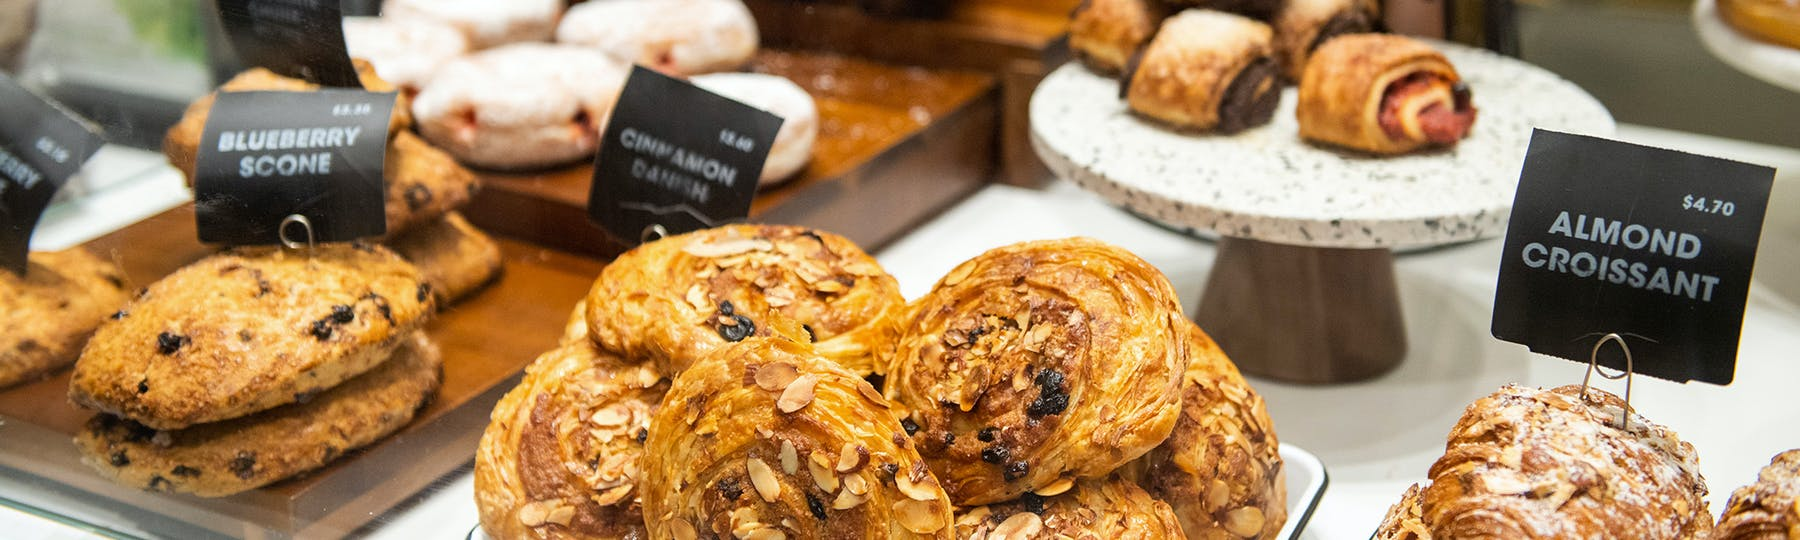 an assortment of pastries for sale